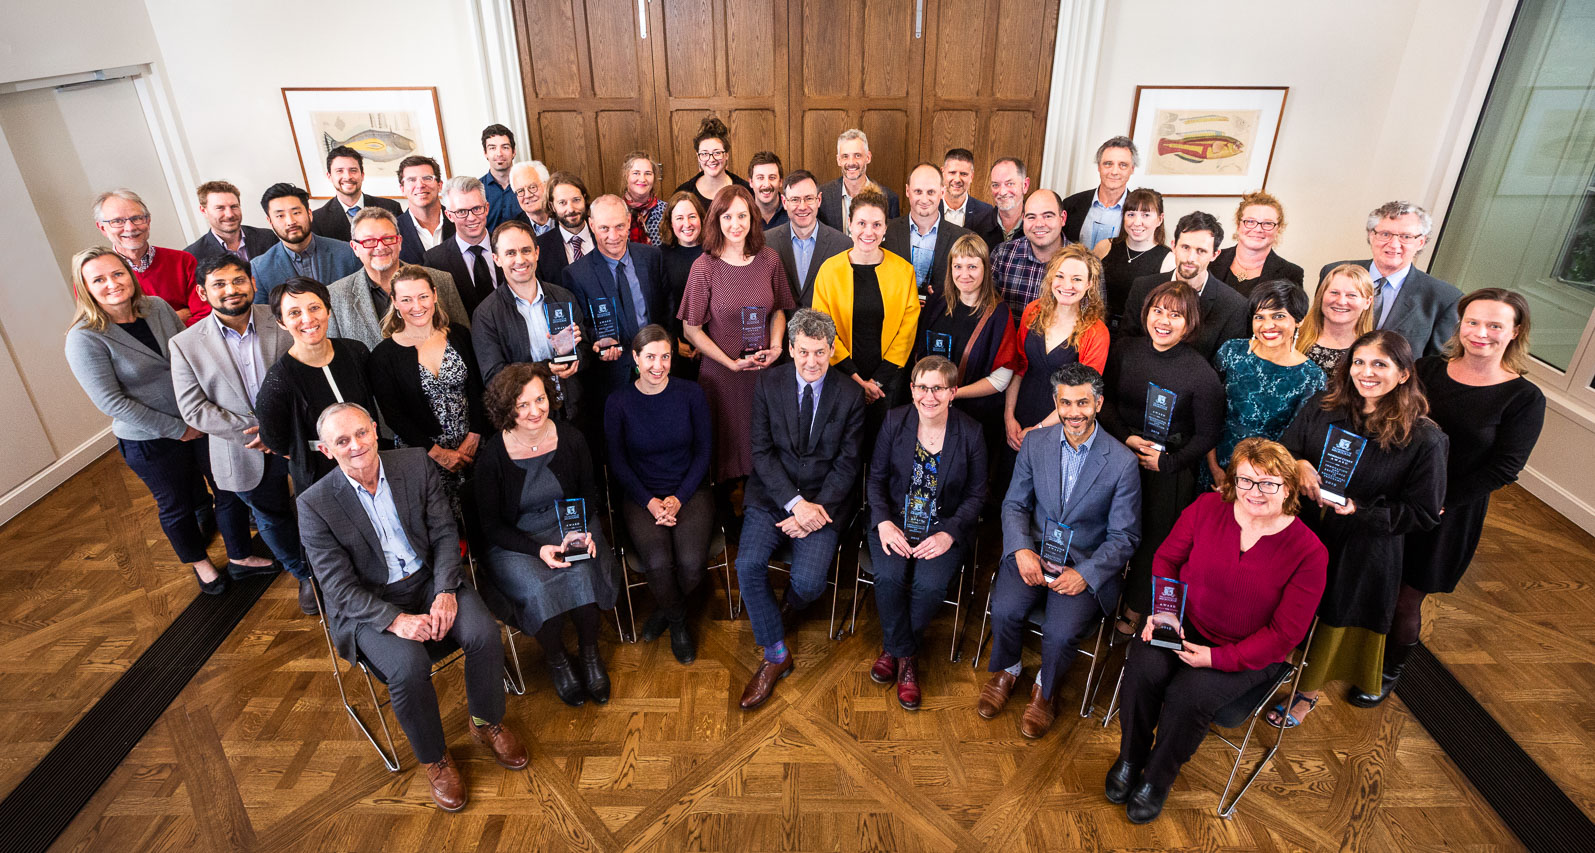 2019 Excellence Awards Presentation group photo